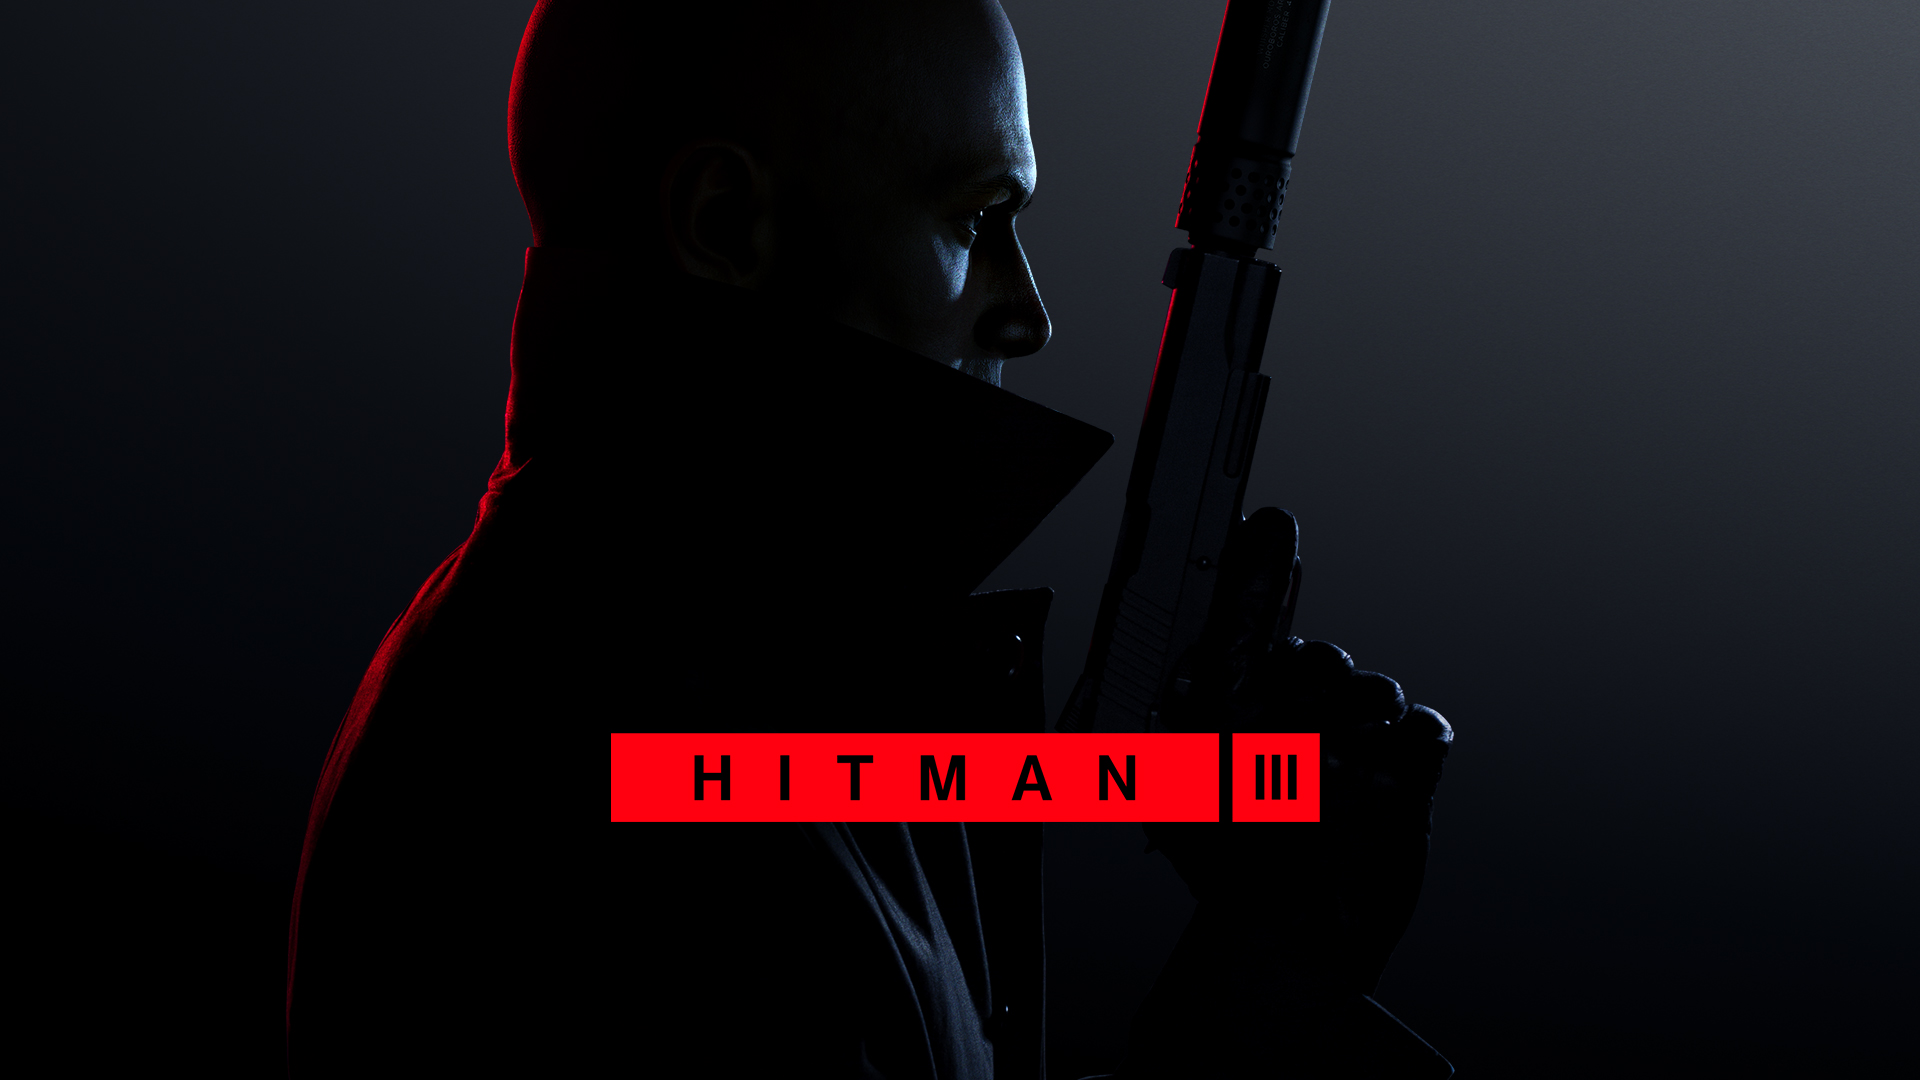 Hitman Franchise is all set to enter the world of immersive virtual reality